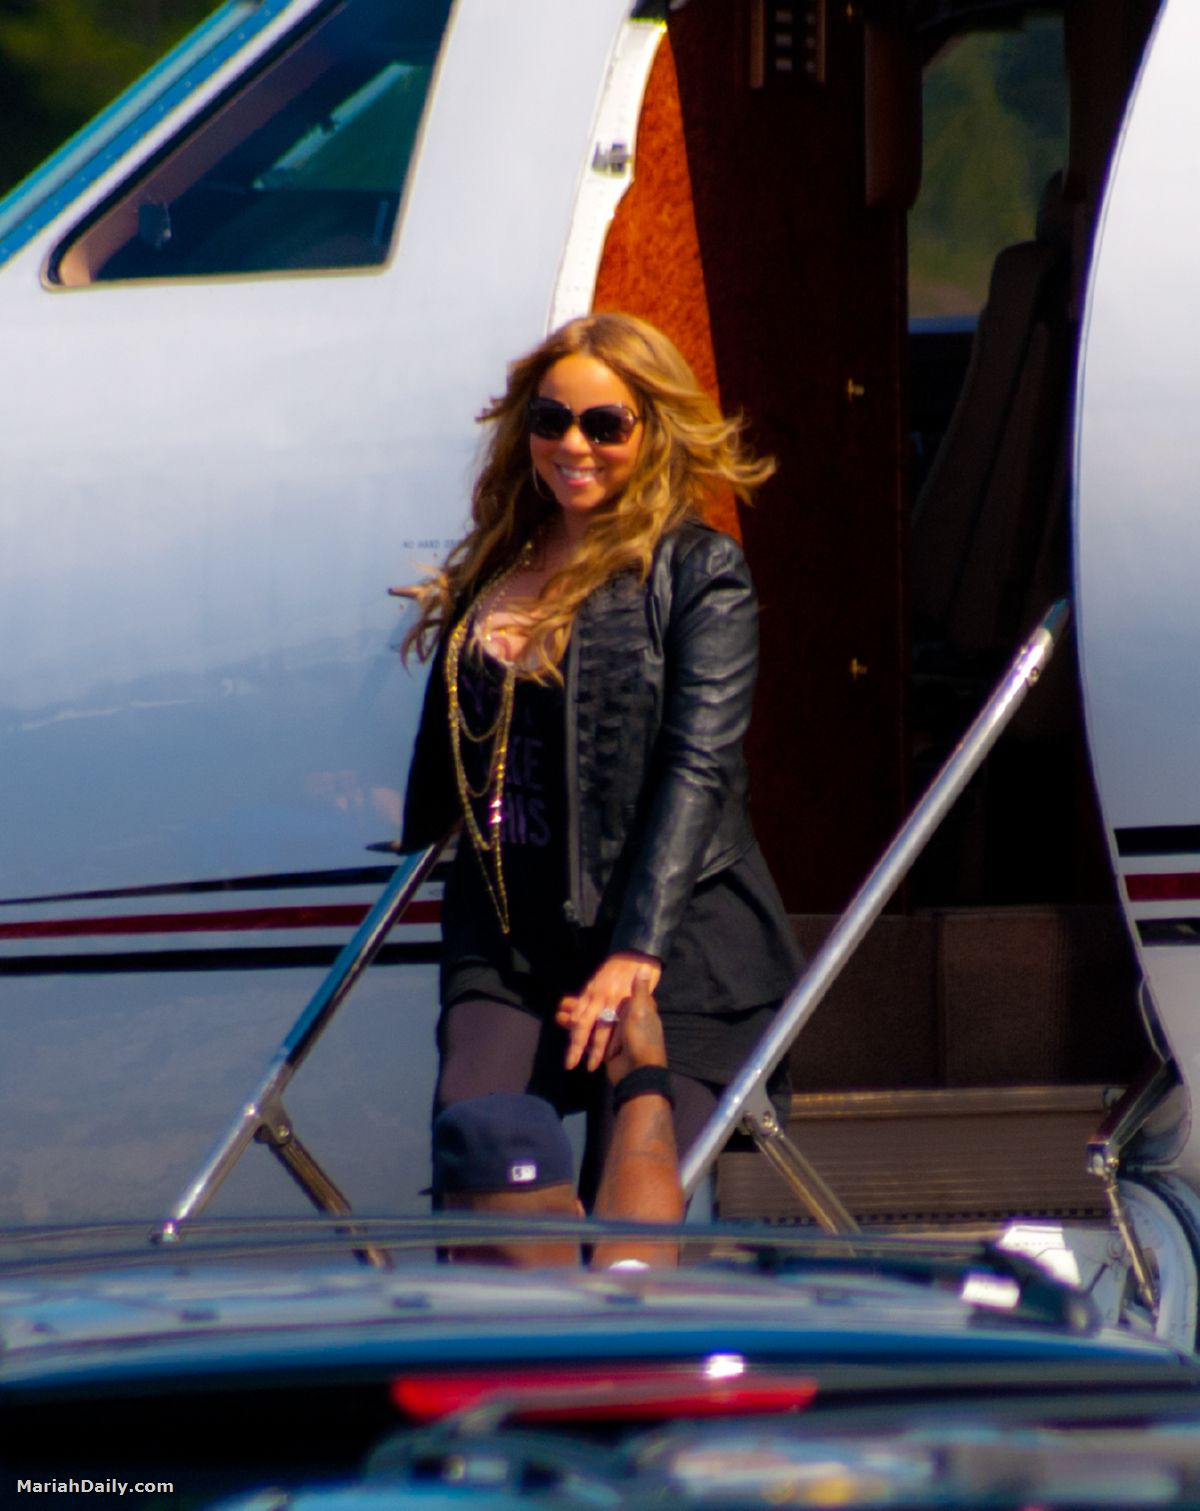 mariah10 Hot Shots: Mariah Carey Arrives In Florida